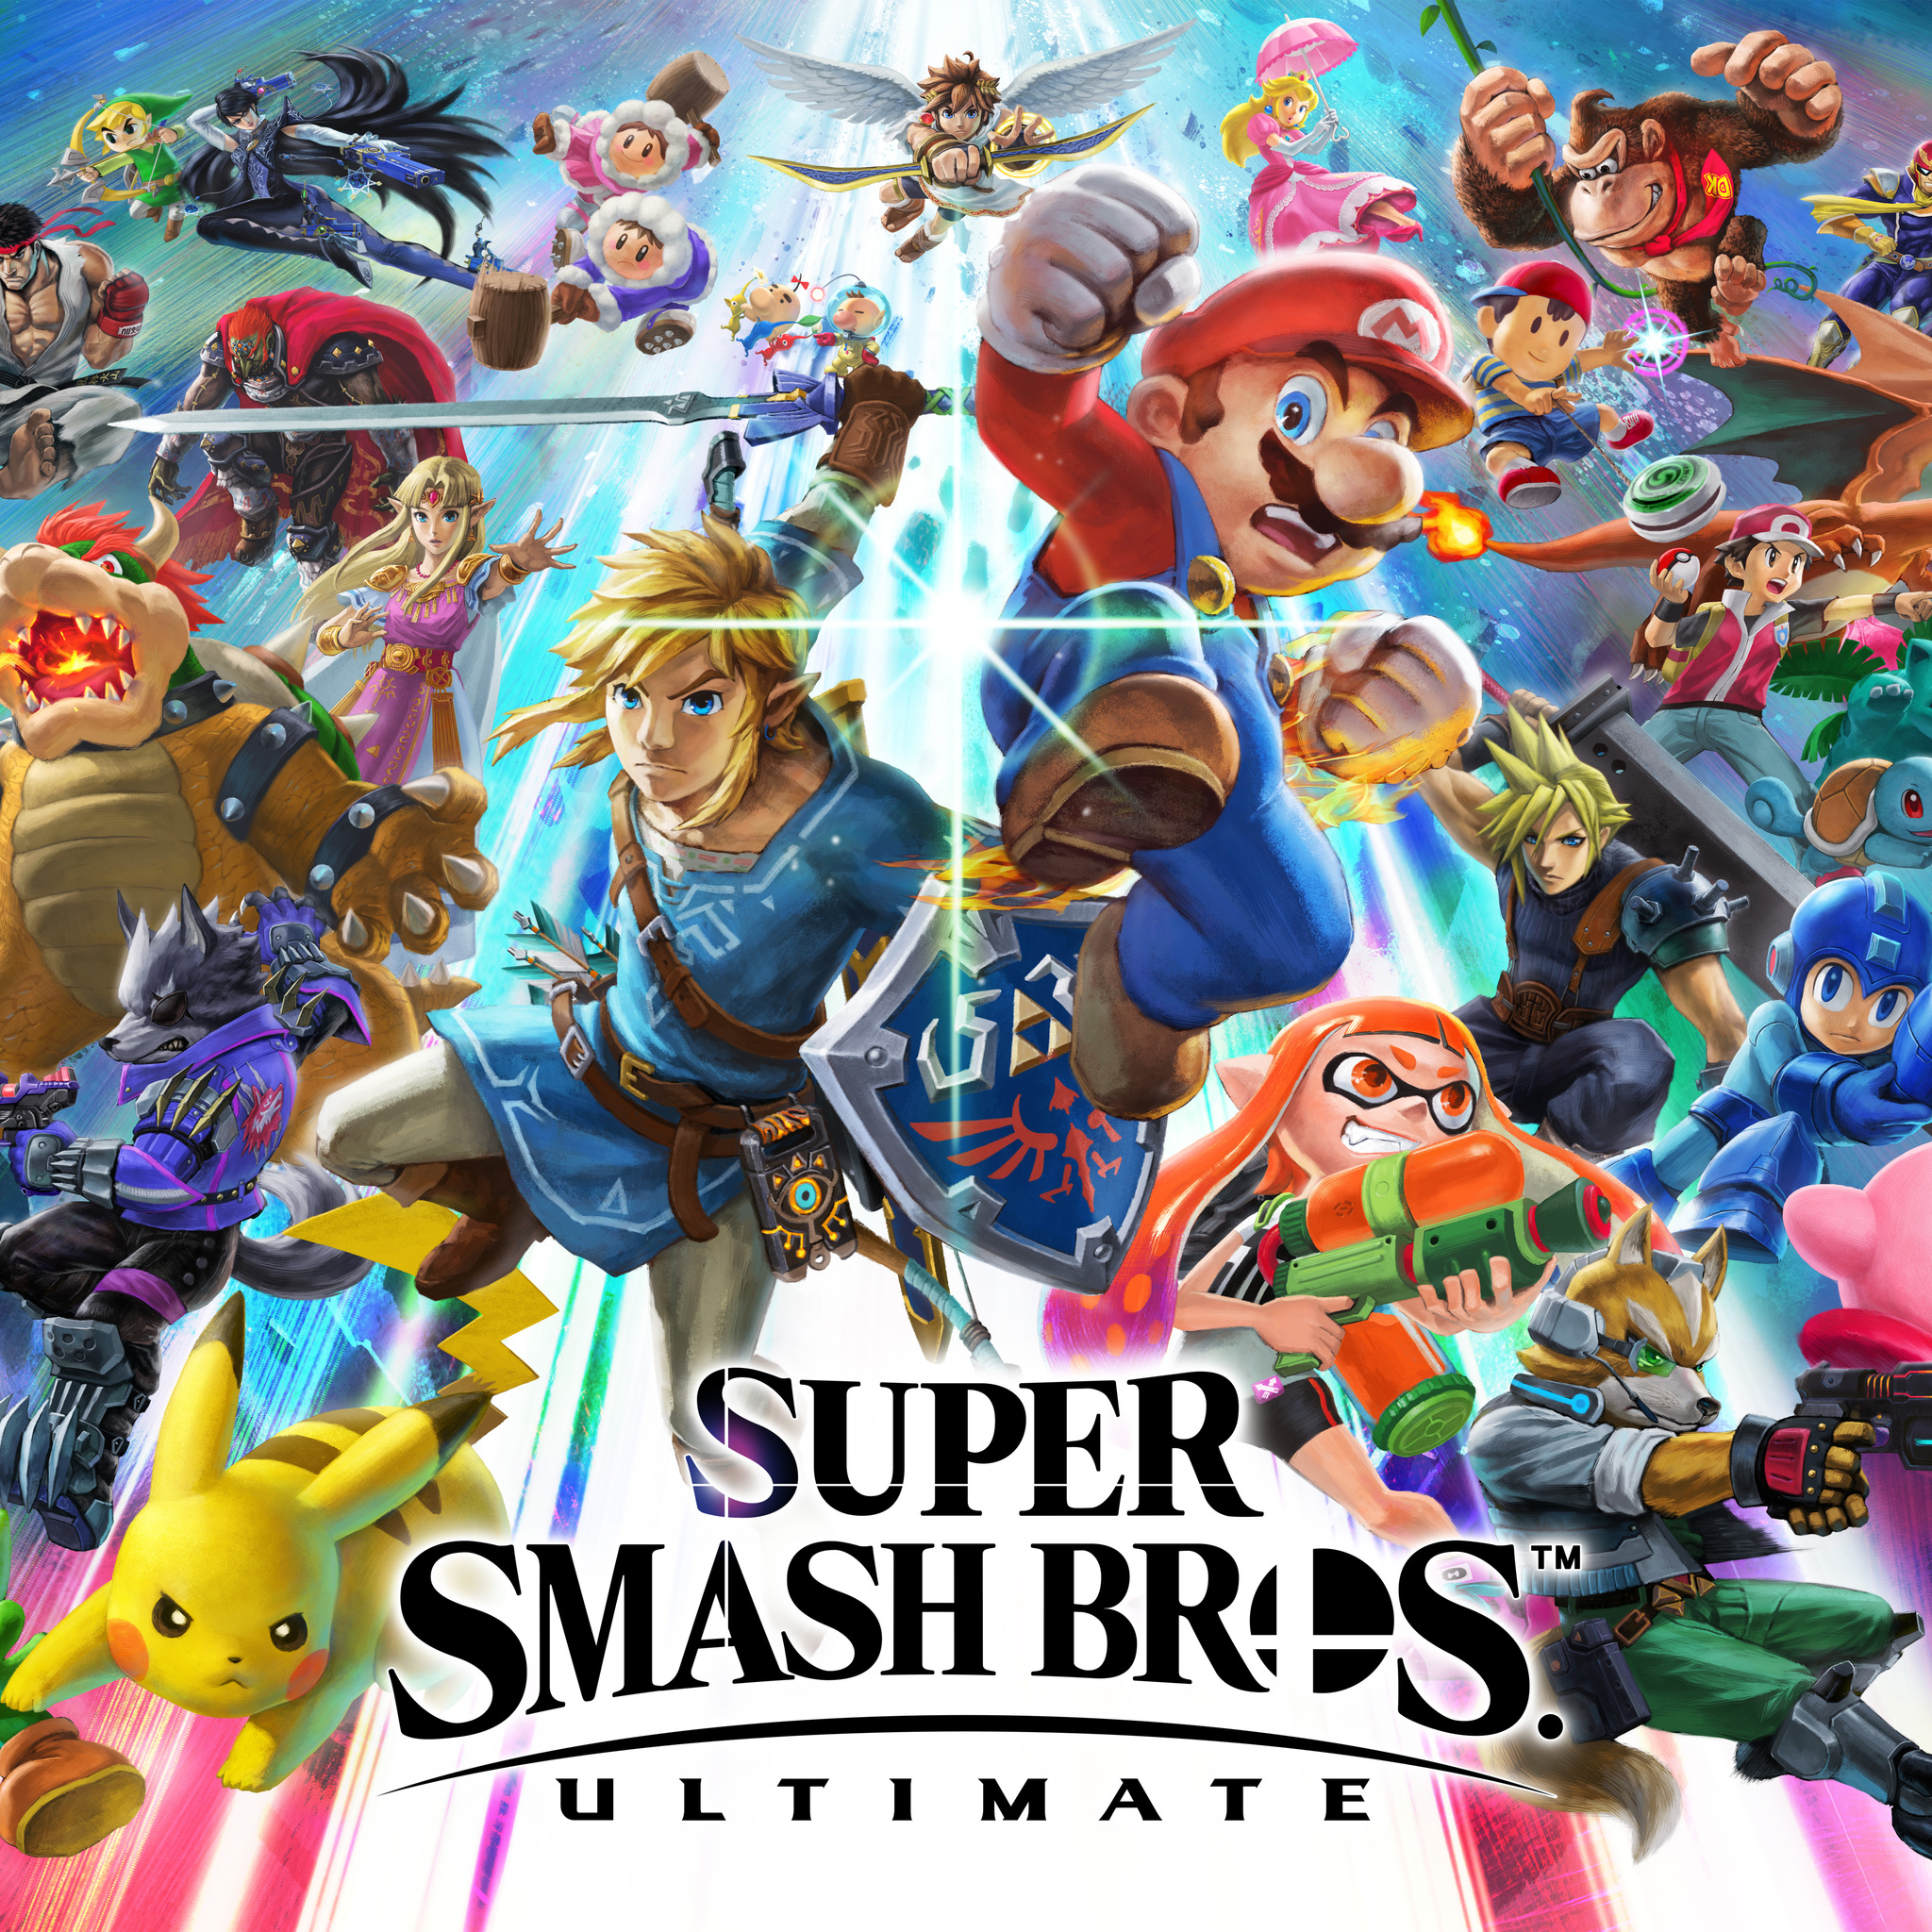 super-smash-bros-ultimate-8k-wl.jpg